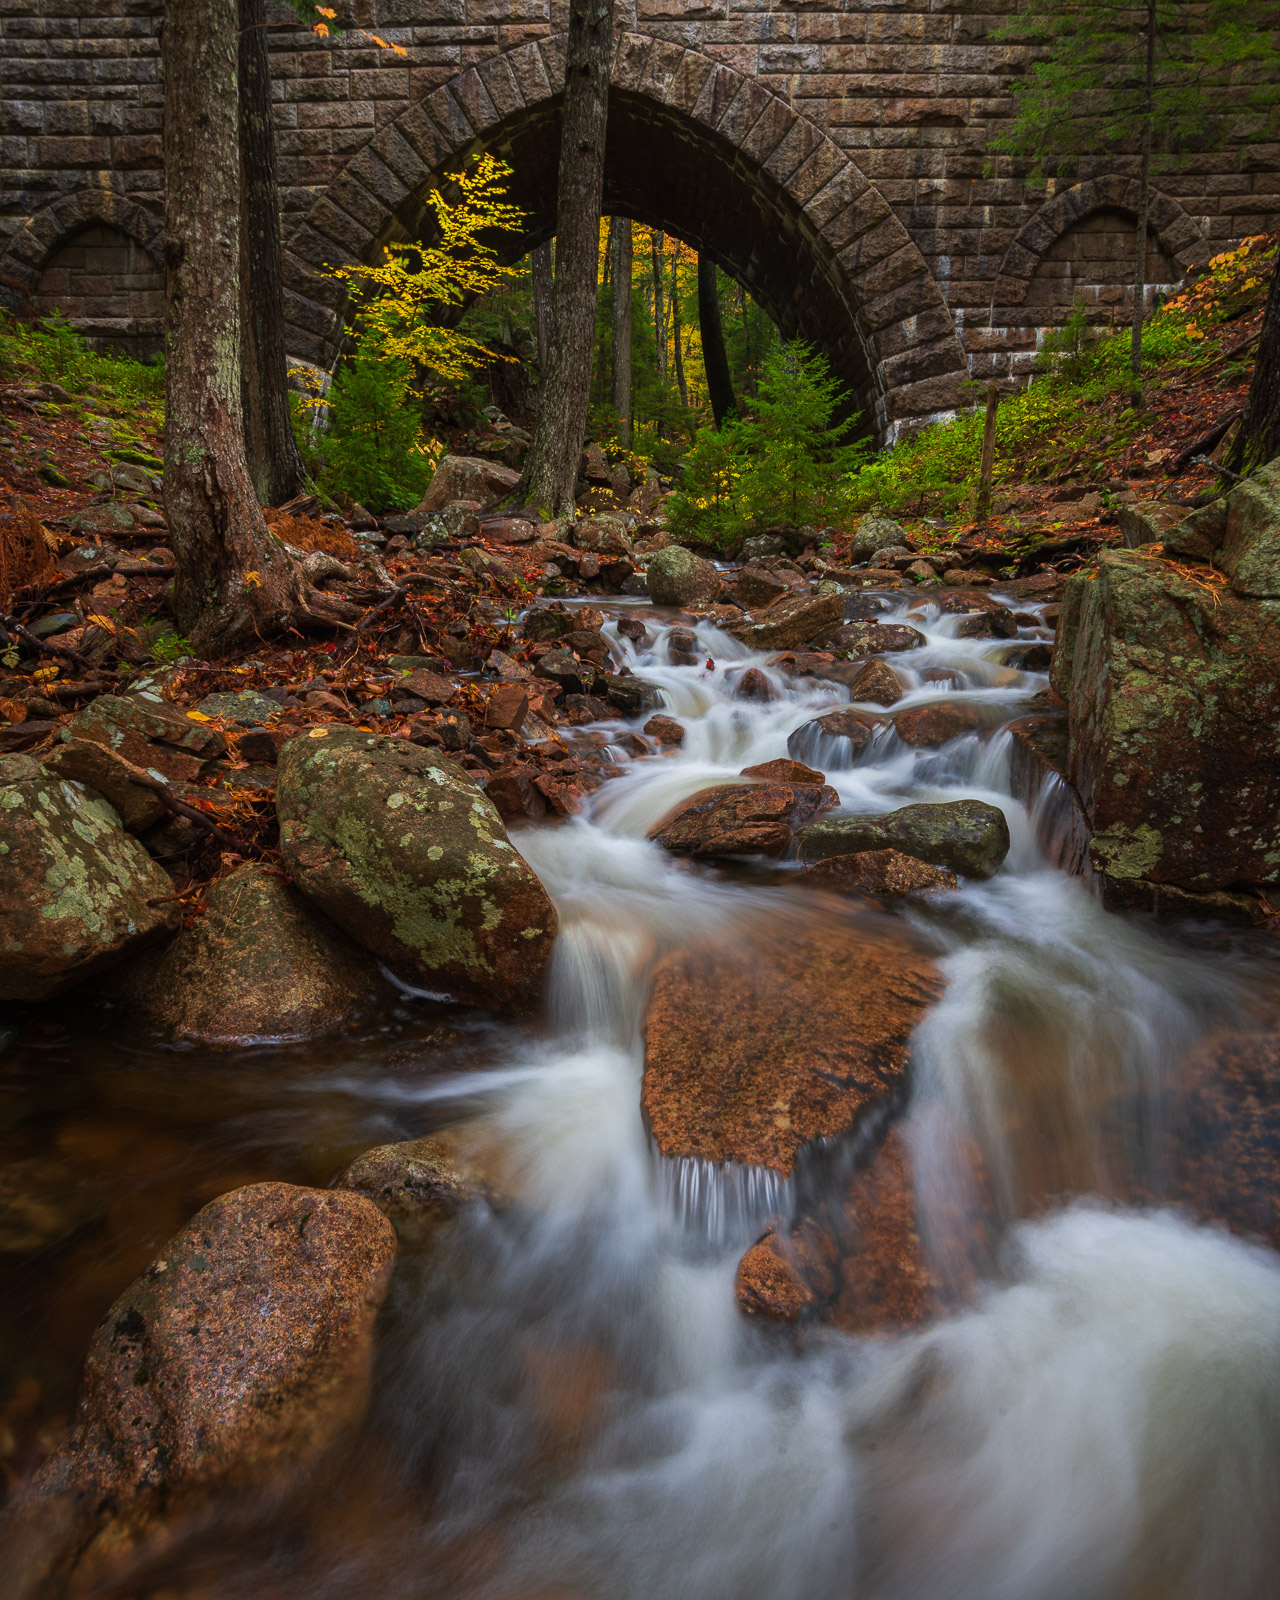 Autumn along Hadlock Brook with one of the parks iconic Carriage Road Bridges seen in the background.